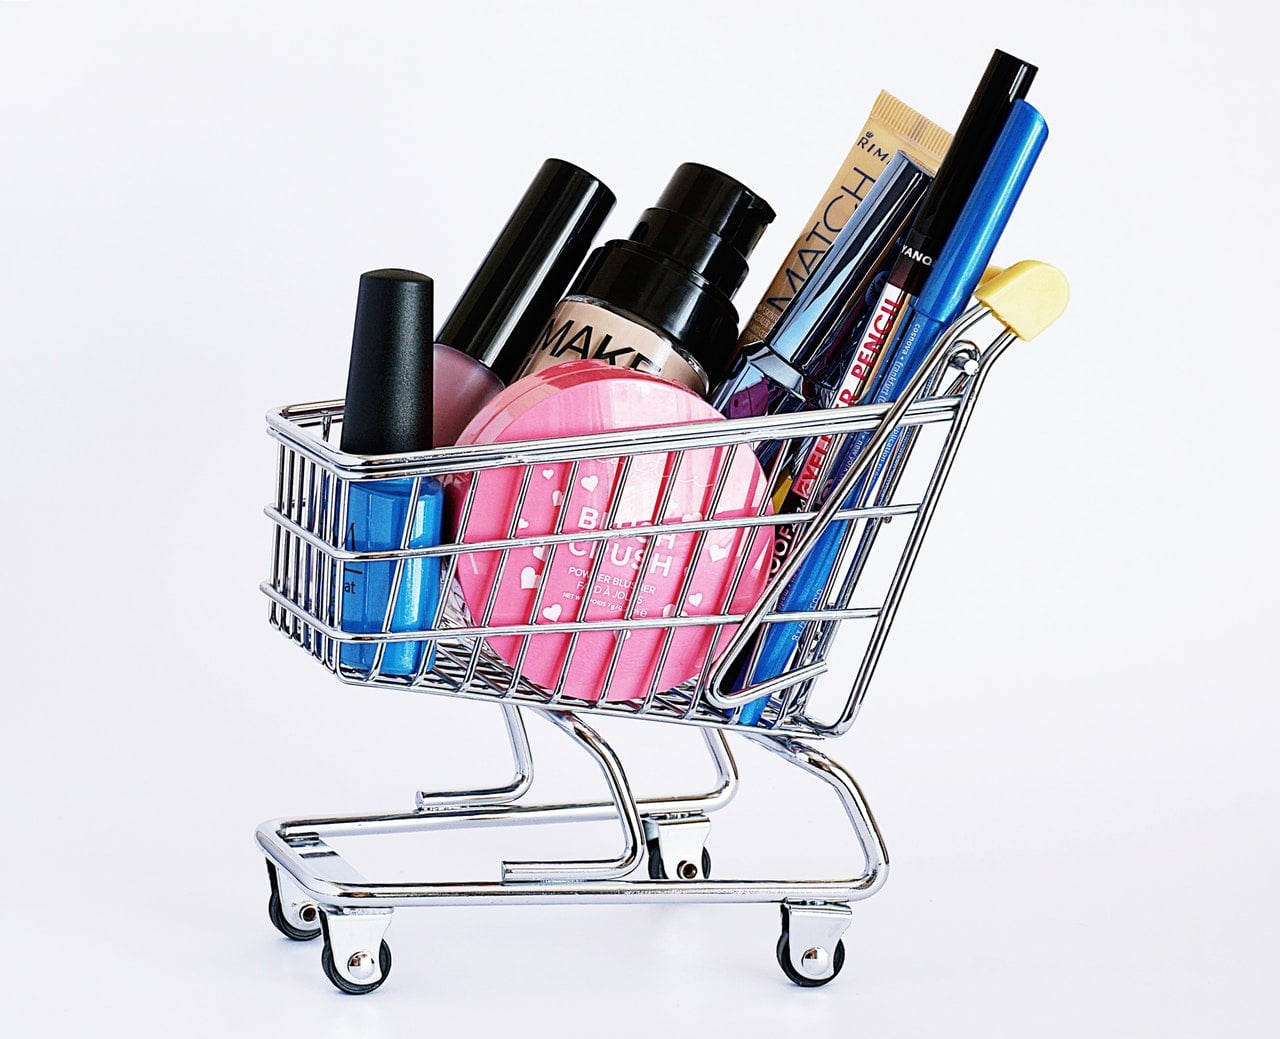 Cosmetics on cart